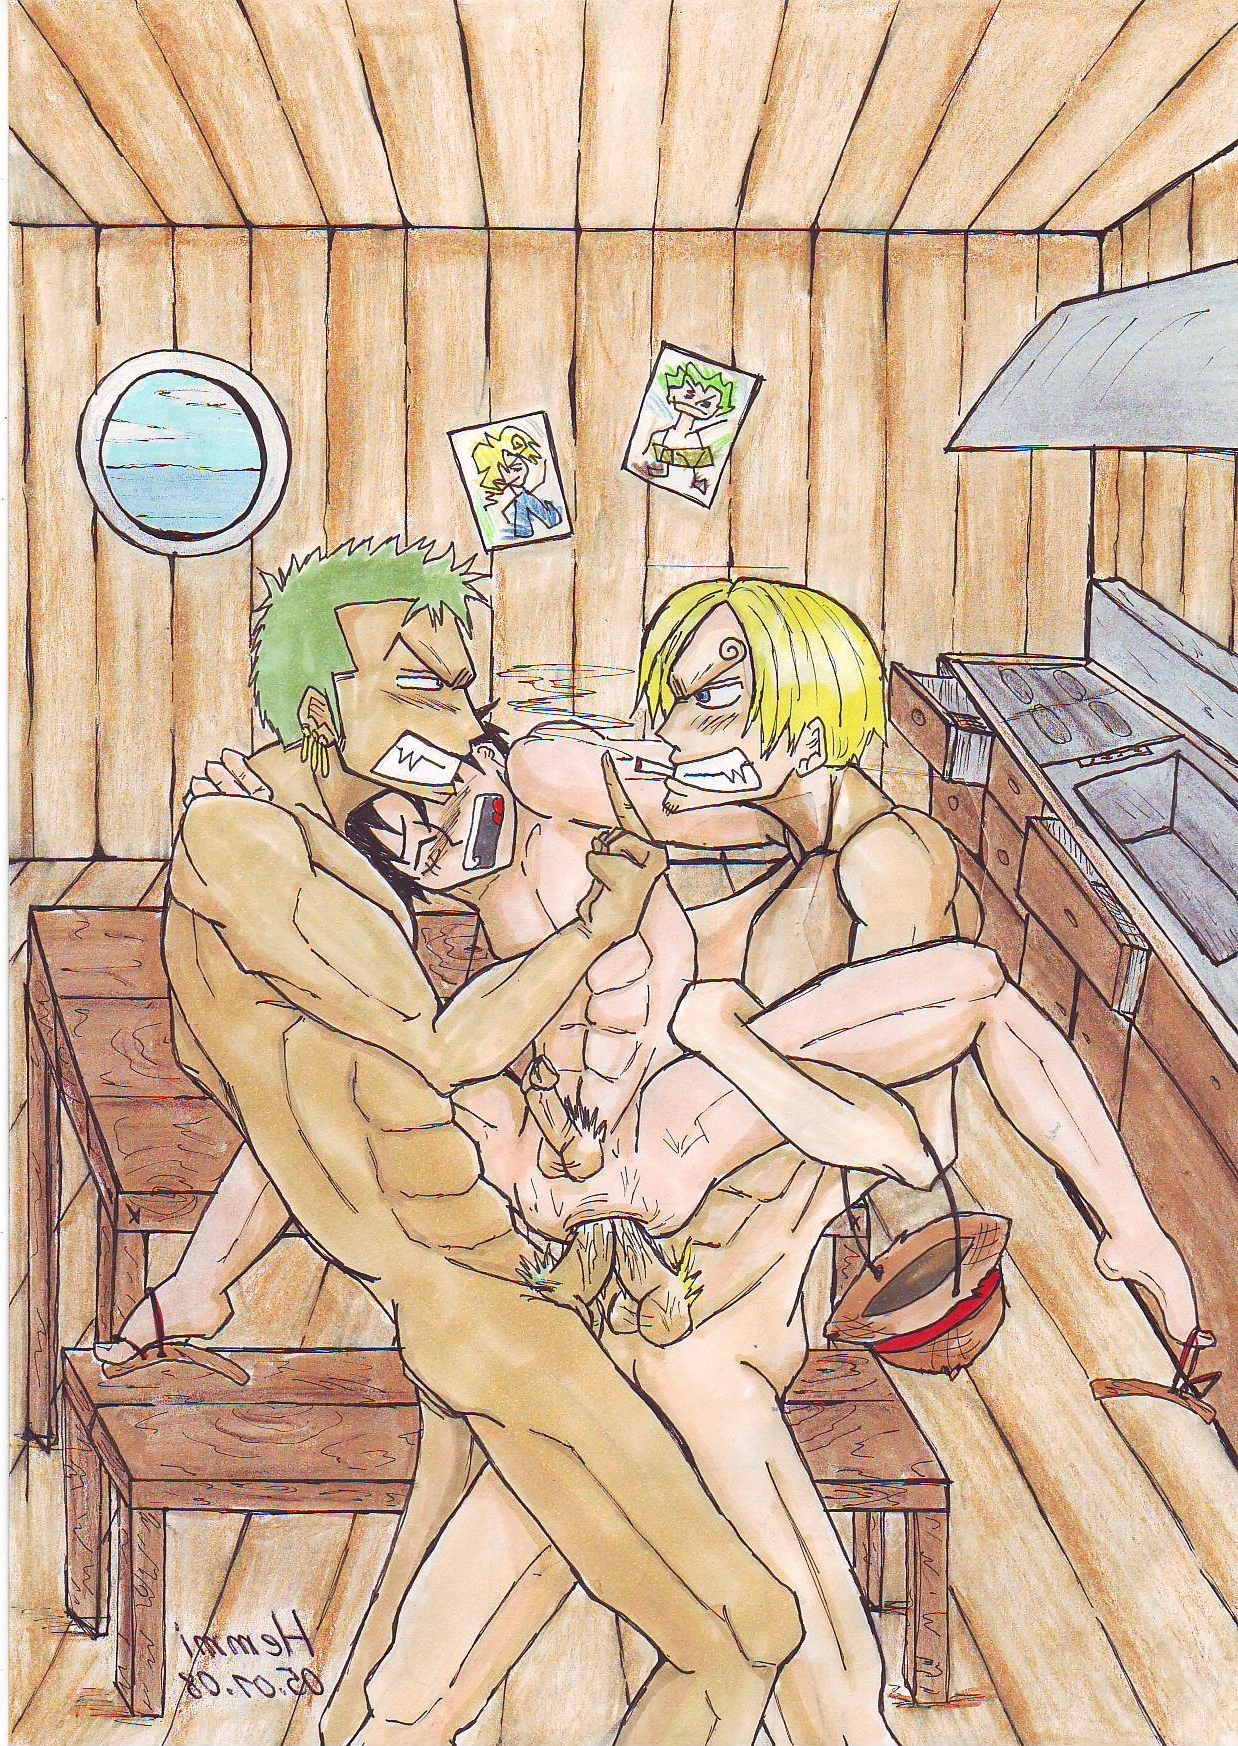 Toon sex pic ##000130281857 male monkey d. luffy one piece roronoa zoro sanji yaoi